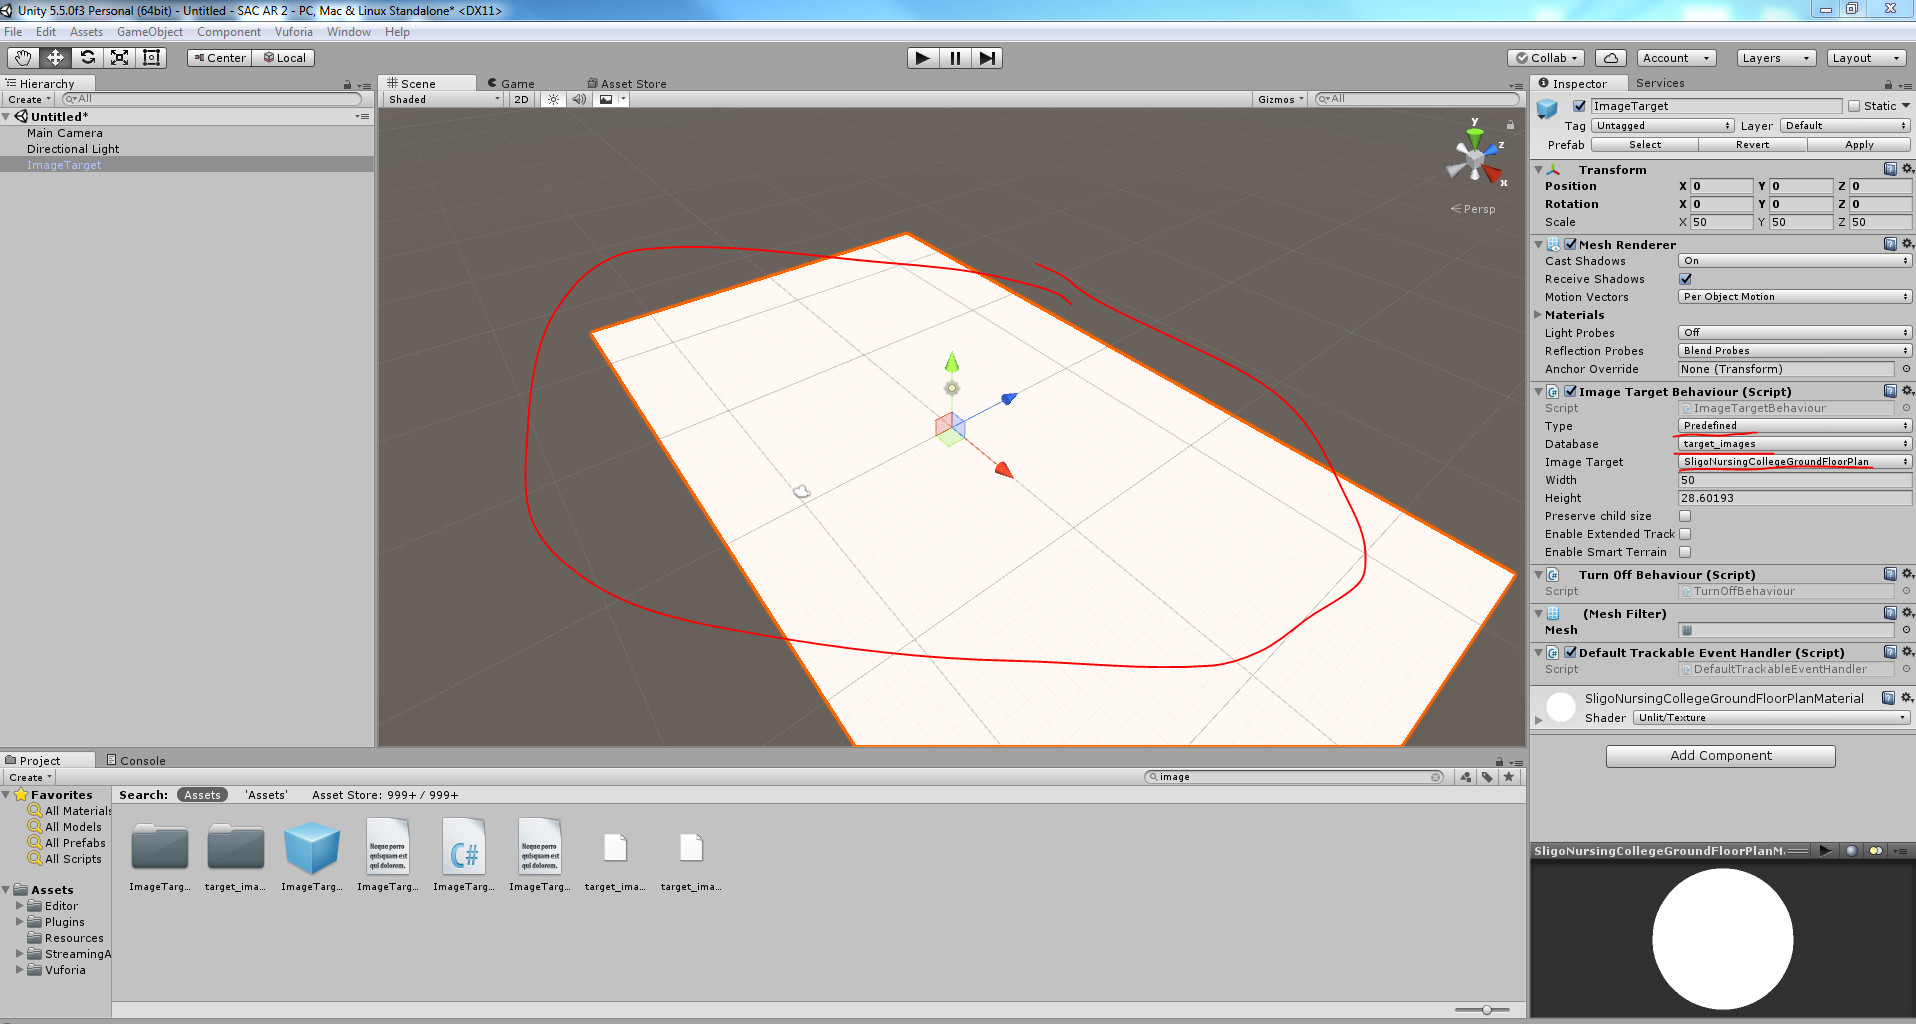 Target Image not displaying in Unity | Vuforia Developer Portal